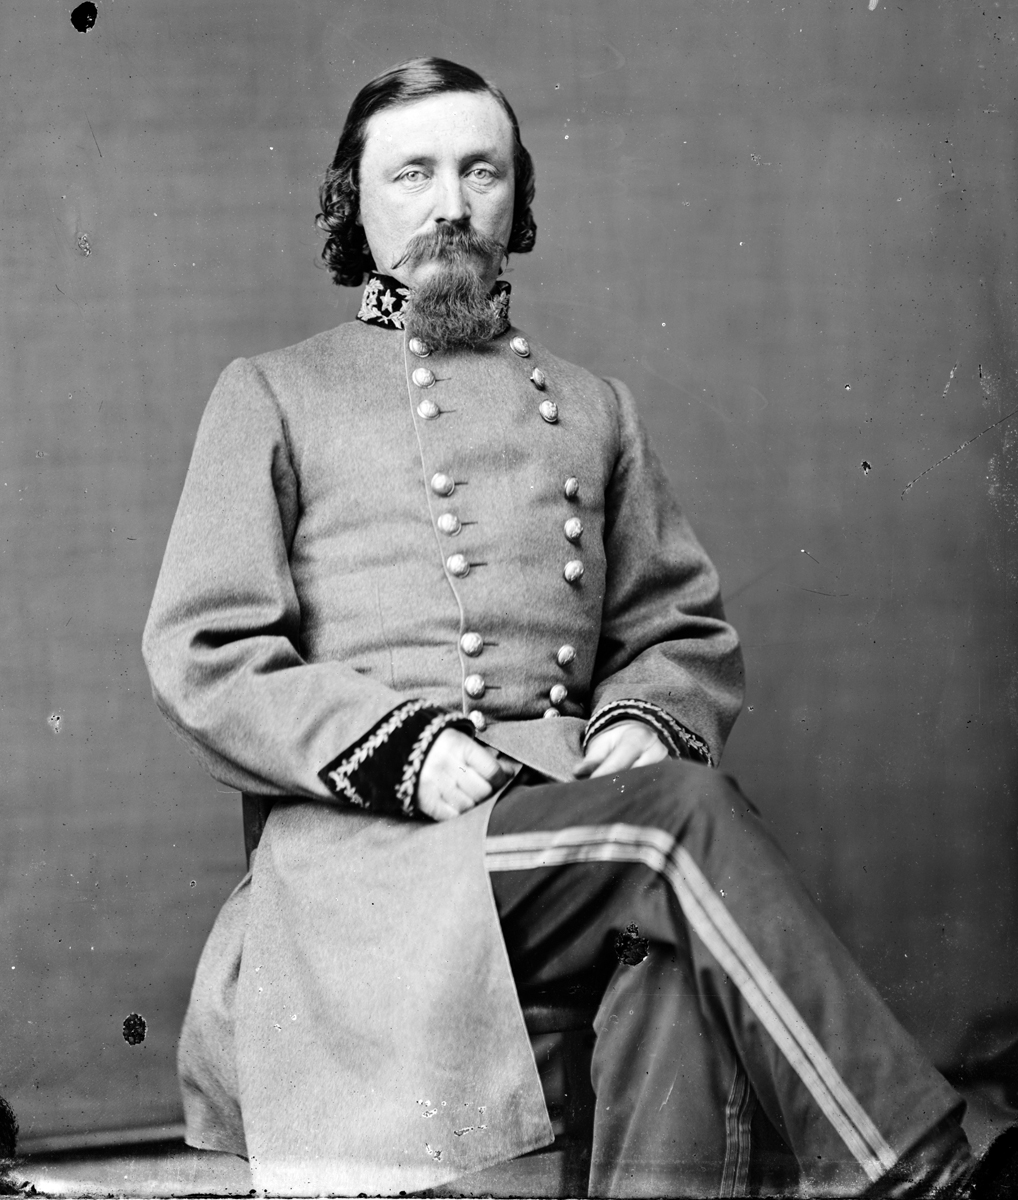 General George Picket (1825-1875), commander during the Mexican-American War and the Civil War.